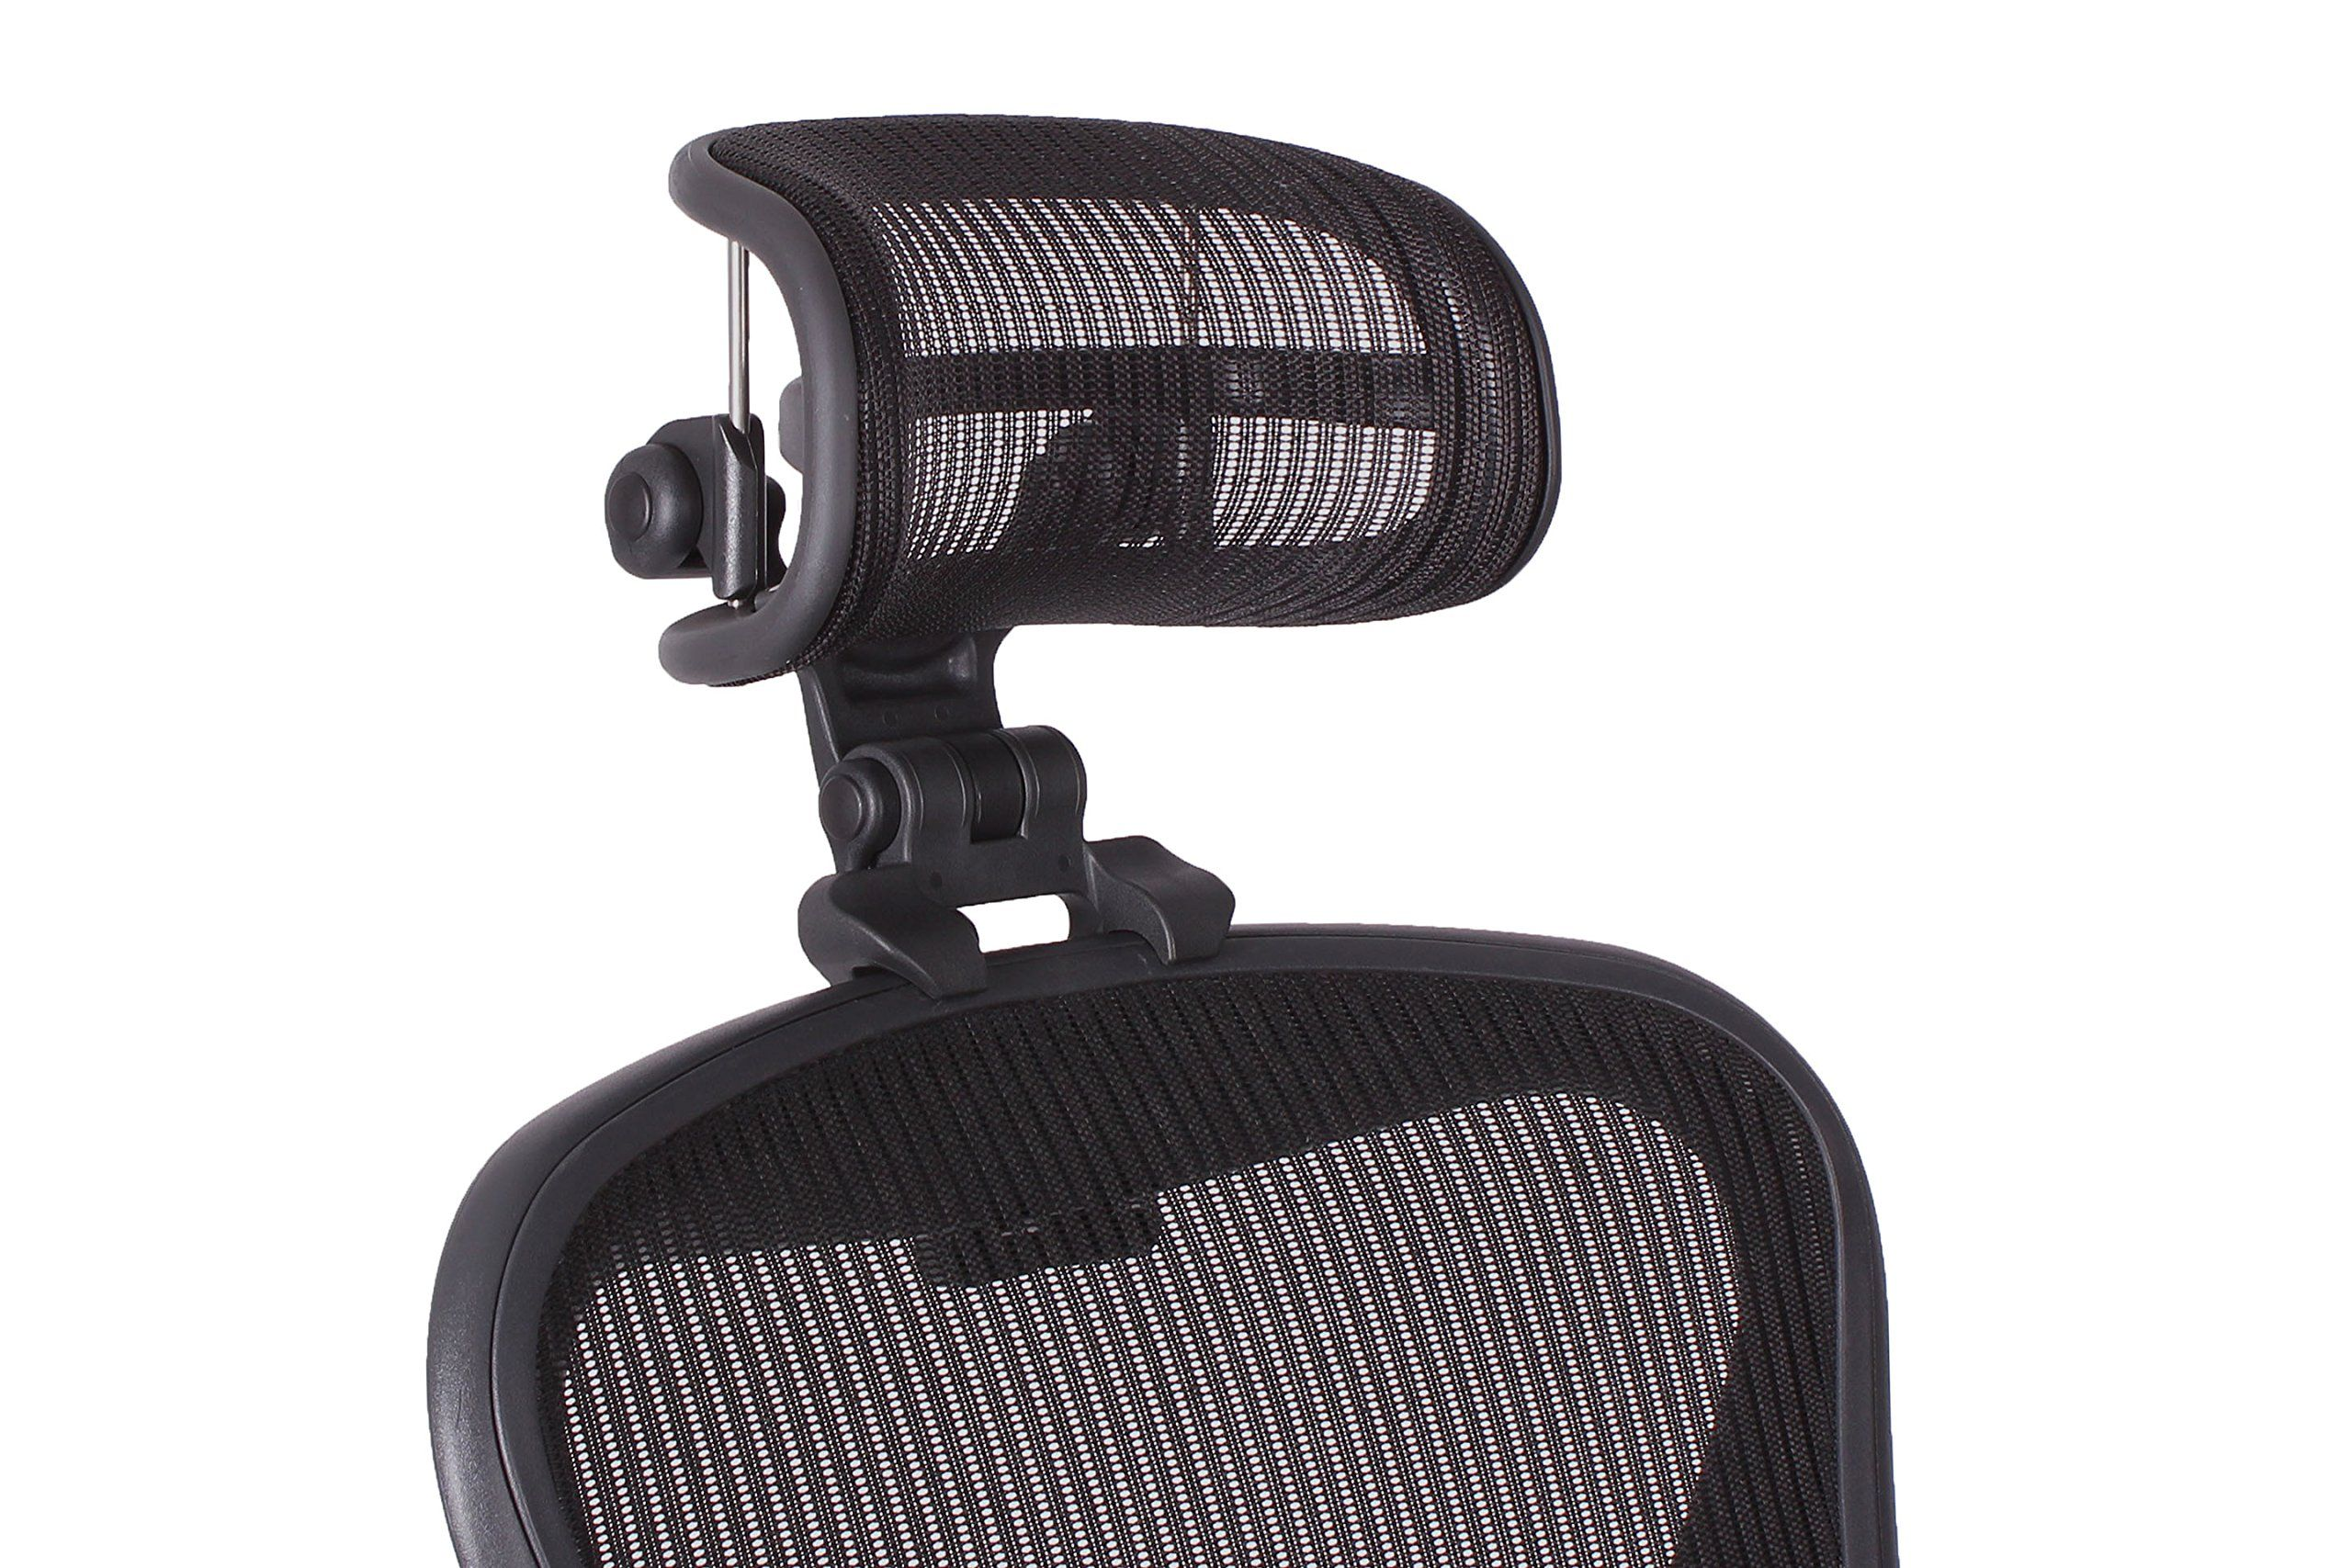 The Original Headrest For The Herman Miller Aeron Chair H3 Carbon Colors And Mesh Match Classic Aeron Chair 2 In 2020 Headrest Herman Miller Aeron Chair Body Posture